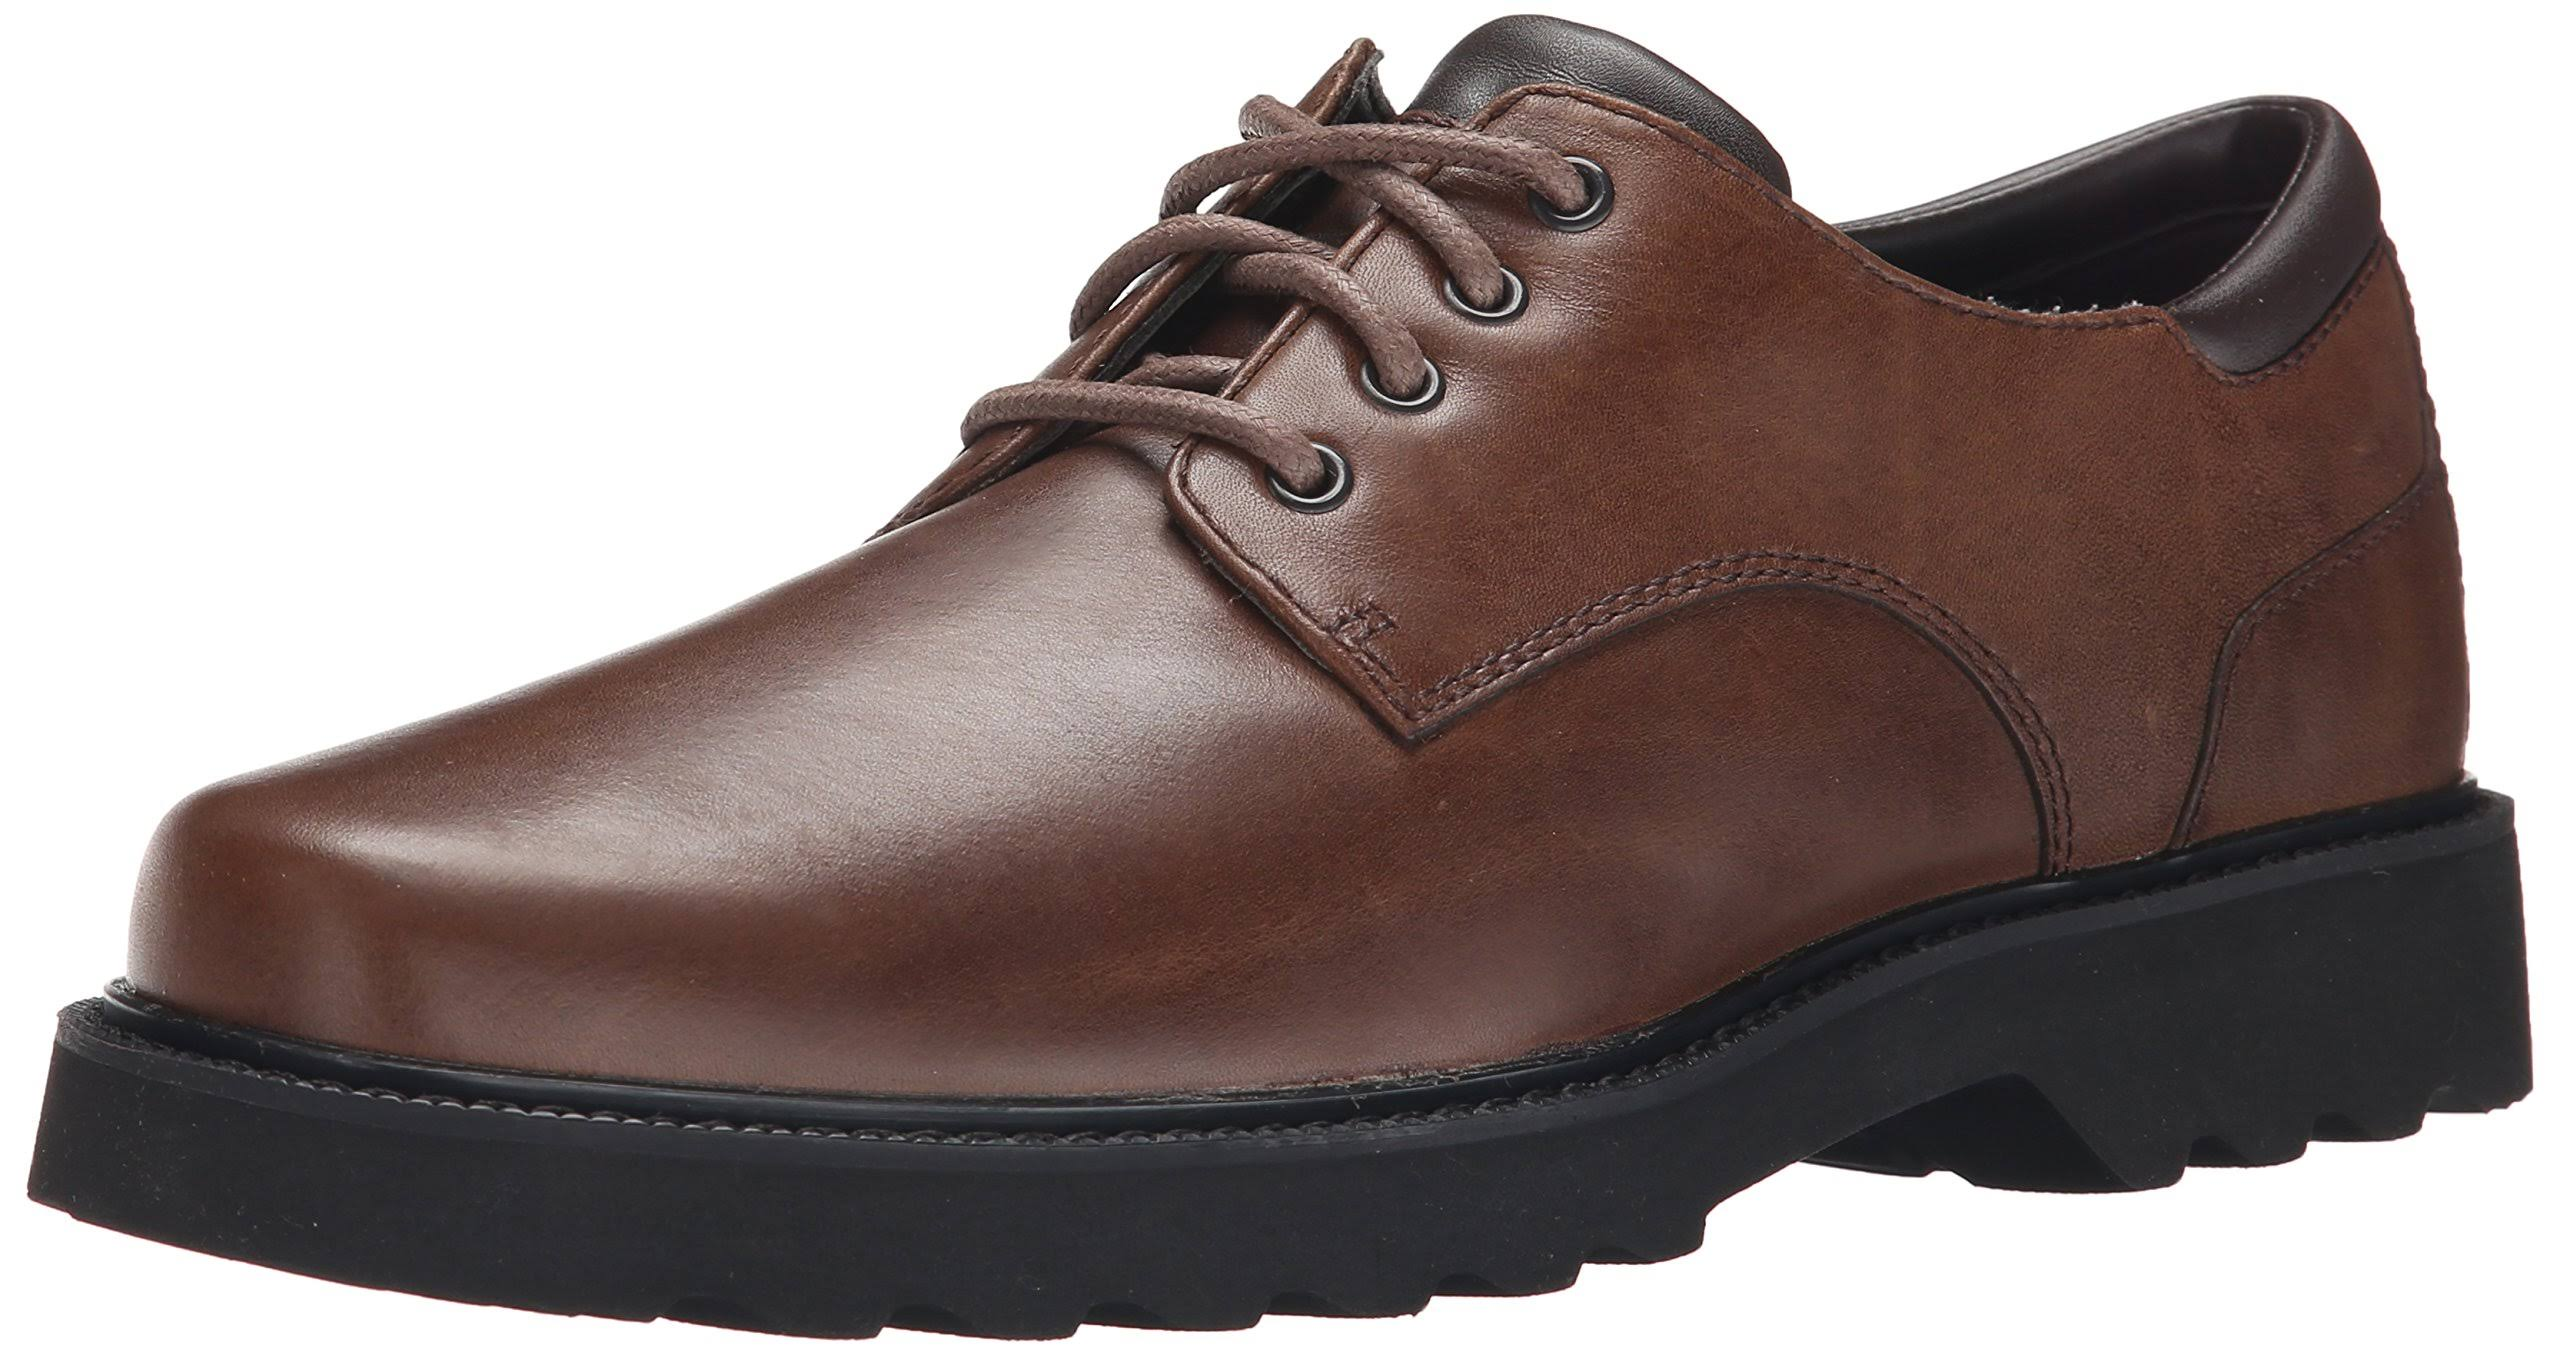 Scuro Rockport Northfield In Men's 13w Taglia Pelle Main DerbysMarrone Impermeabile Route OTwkiuPXZ